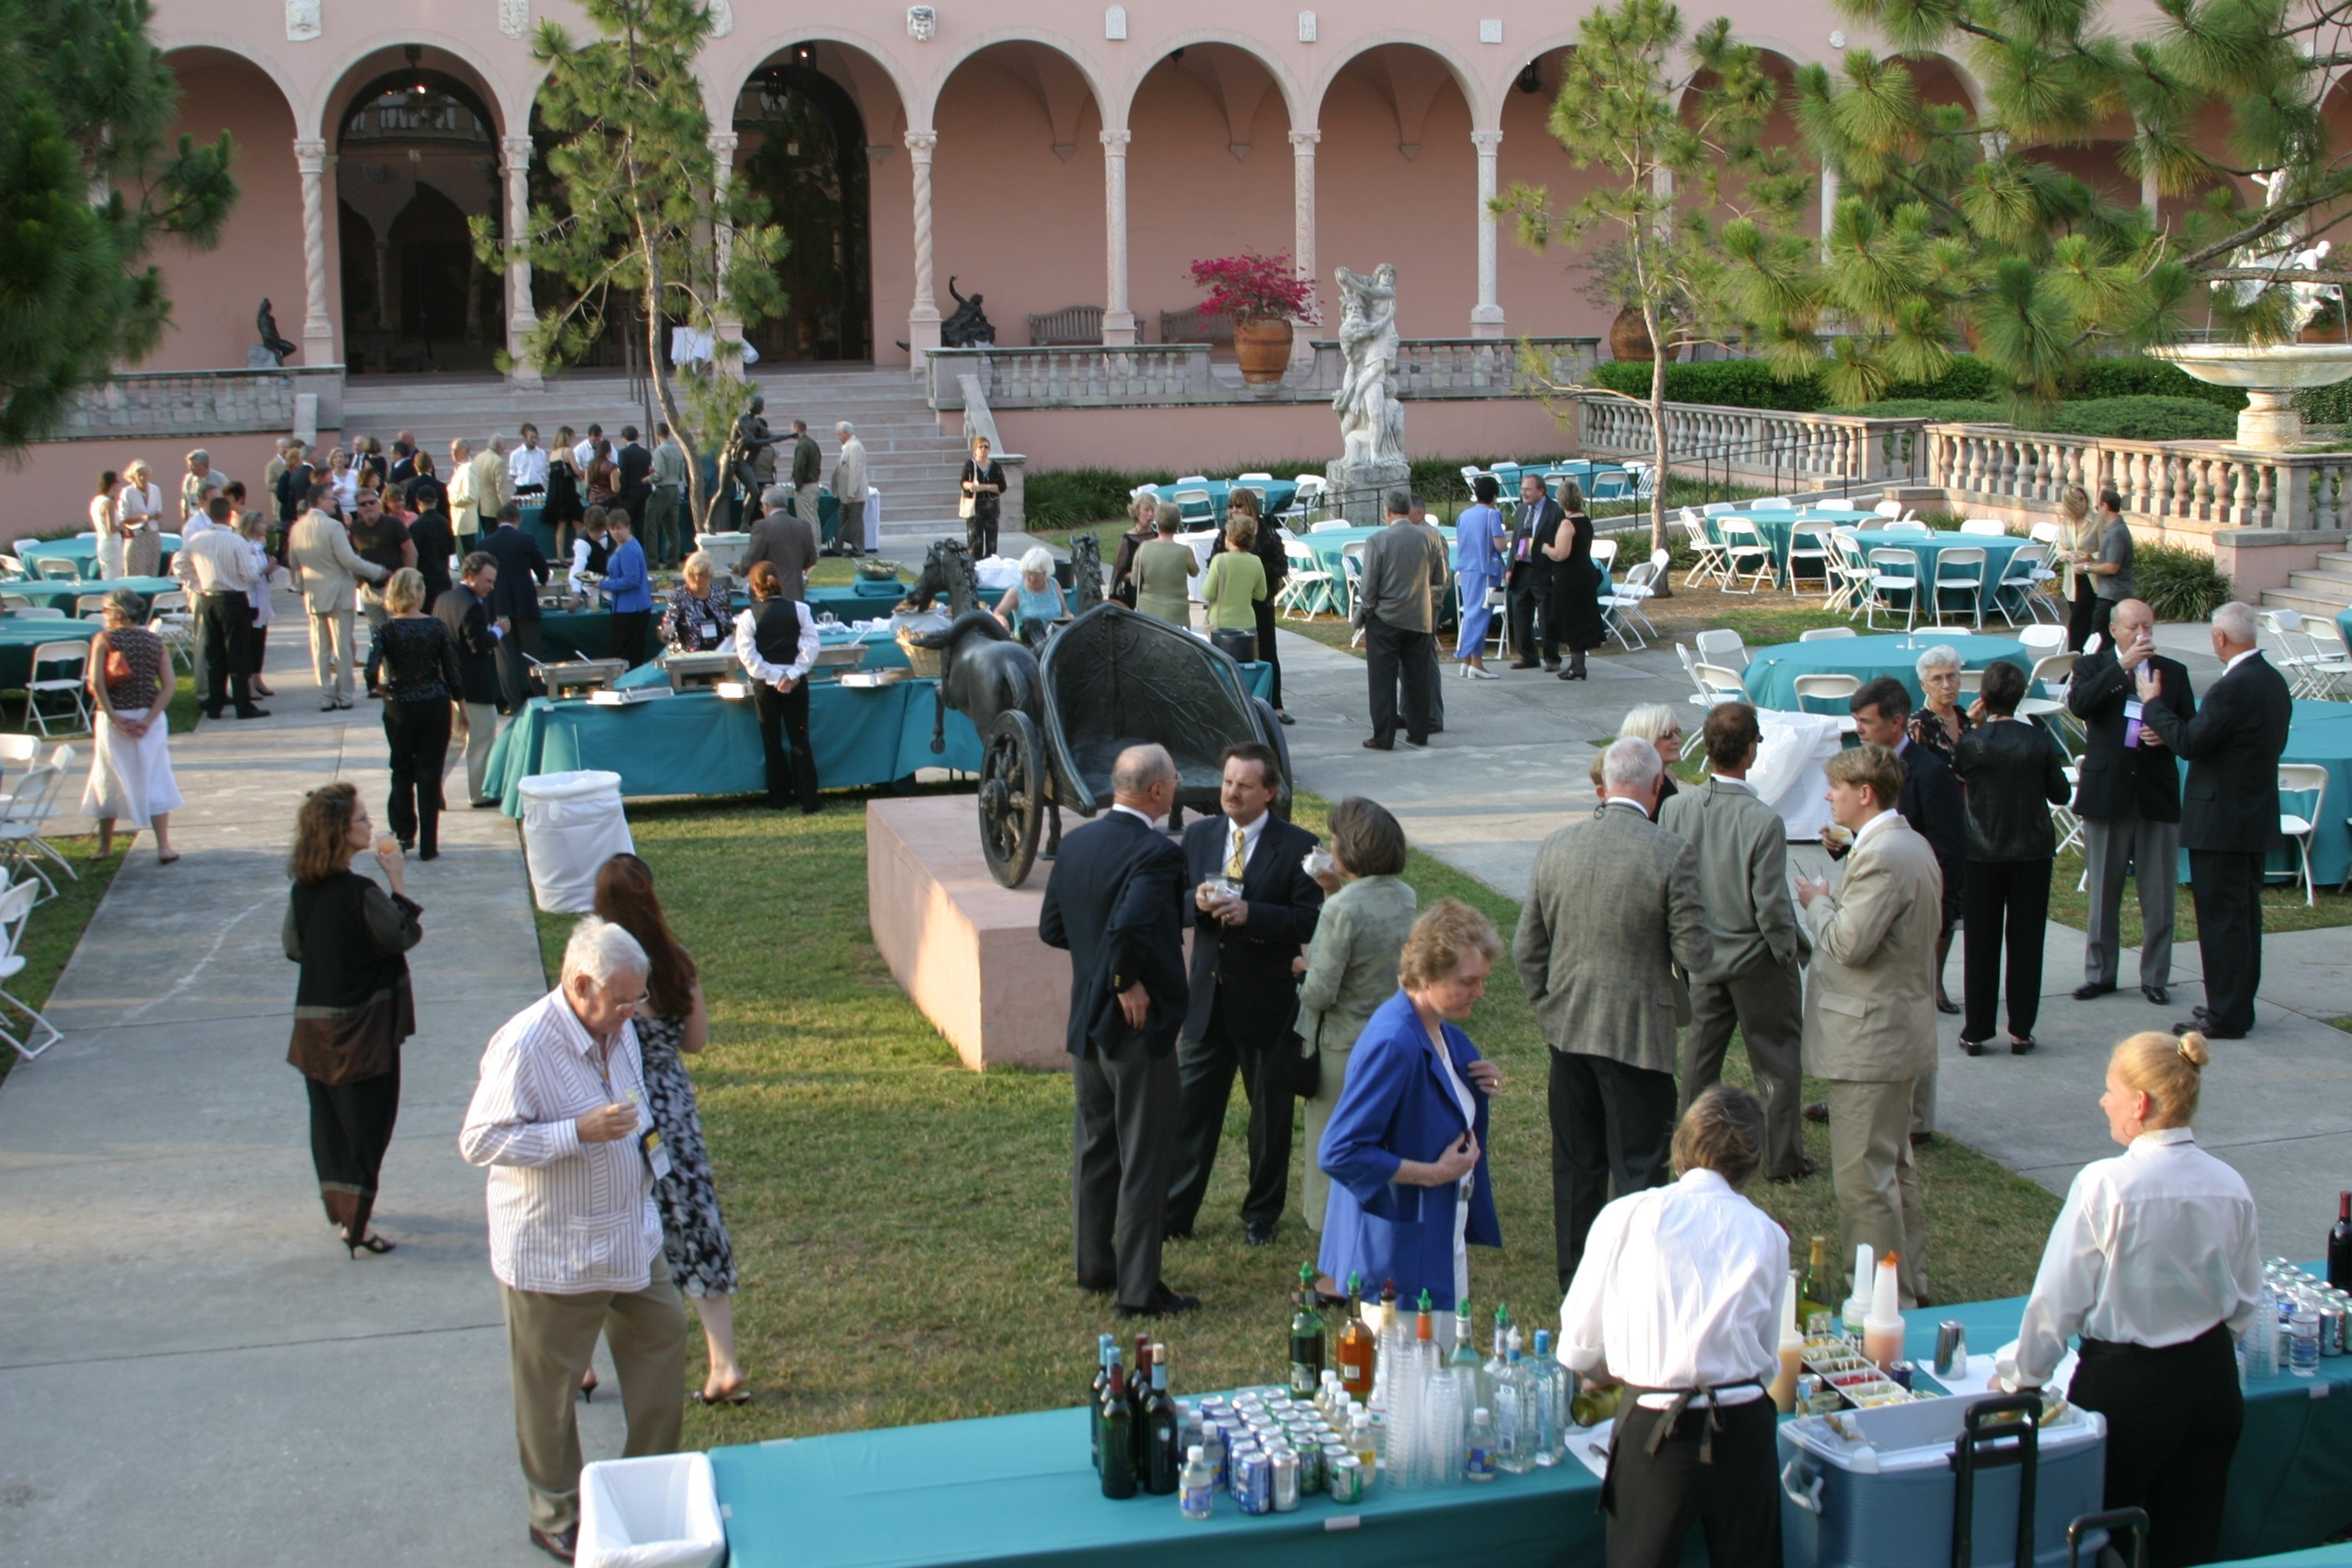 John Ringling, of circus fame, built a mansion called Cà d'Zan in Sarasota, Florida, and filled it with European art treasures. Here participants enjoy a reception outside the Ringling Museum of Art.